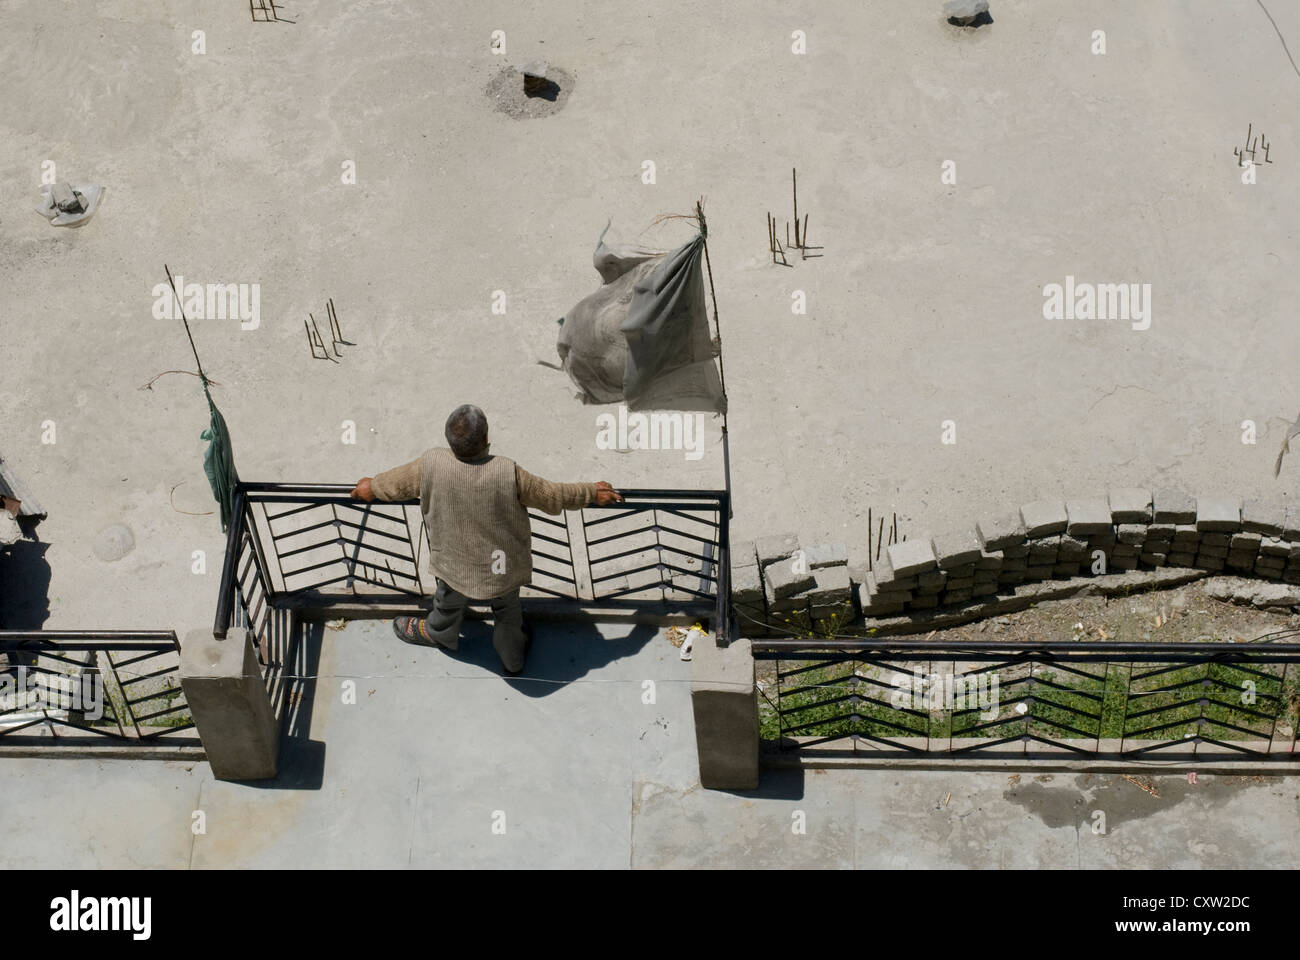 An elderly man stand on his balcony in the Himalayan town of Keylong, India - Stock Image